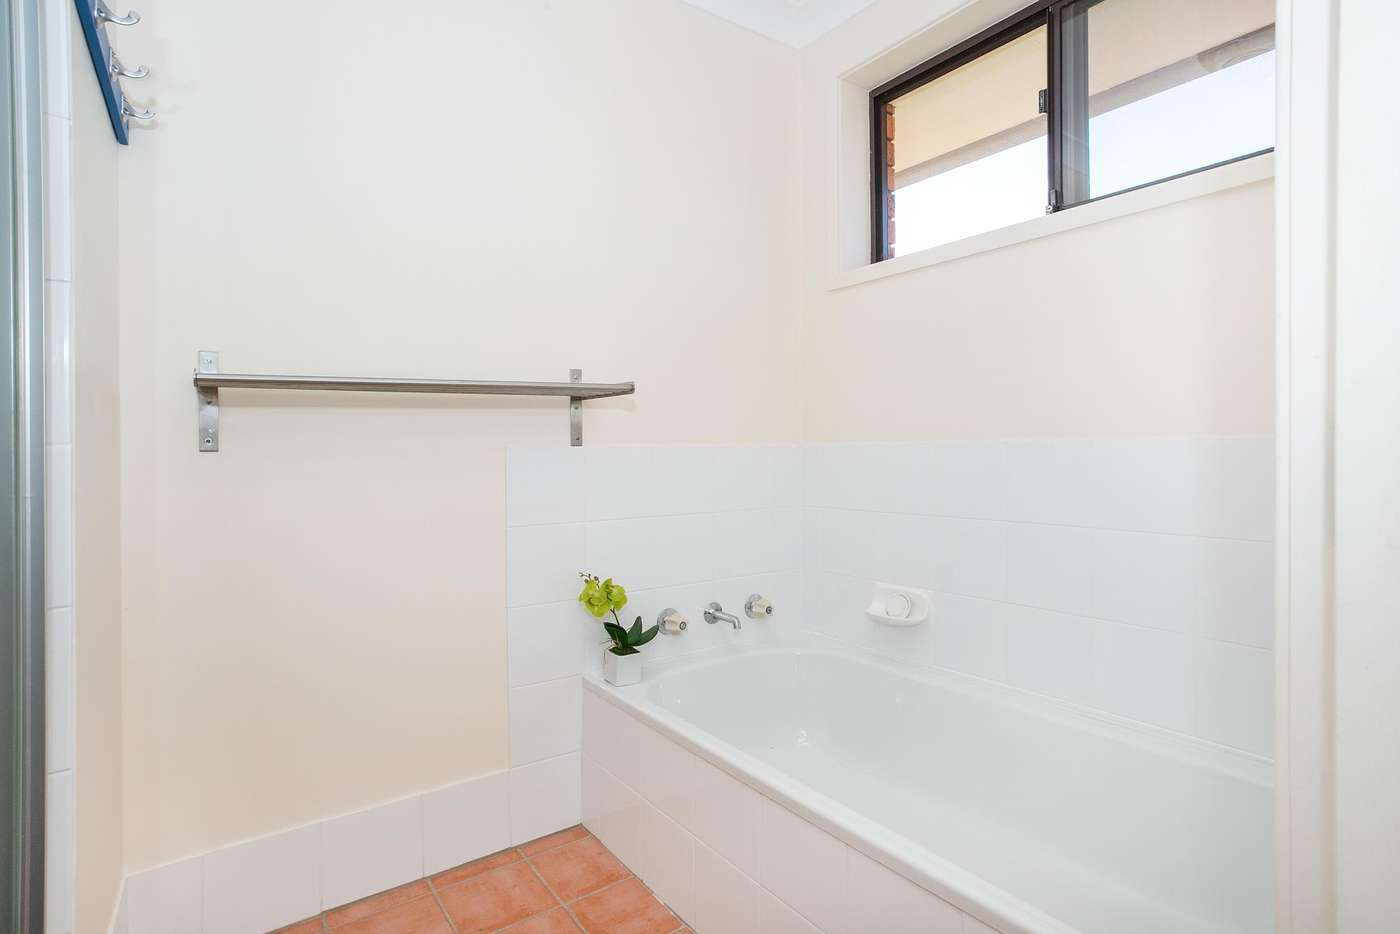 Sixth view of Homely house listing, 6 Treetops Crescent, Mollymook NSW 2539